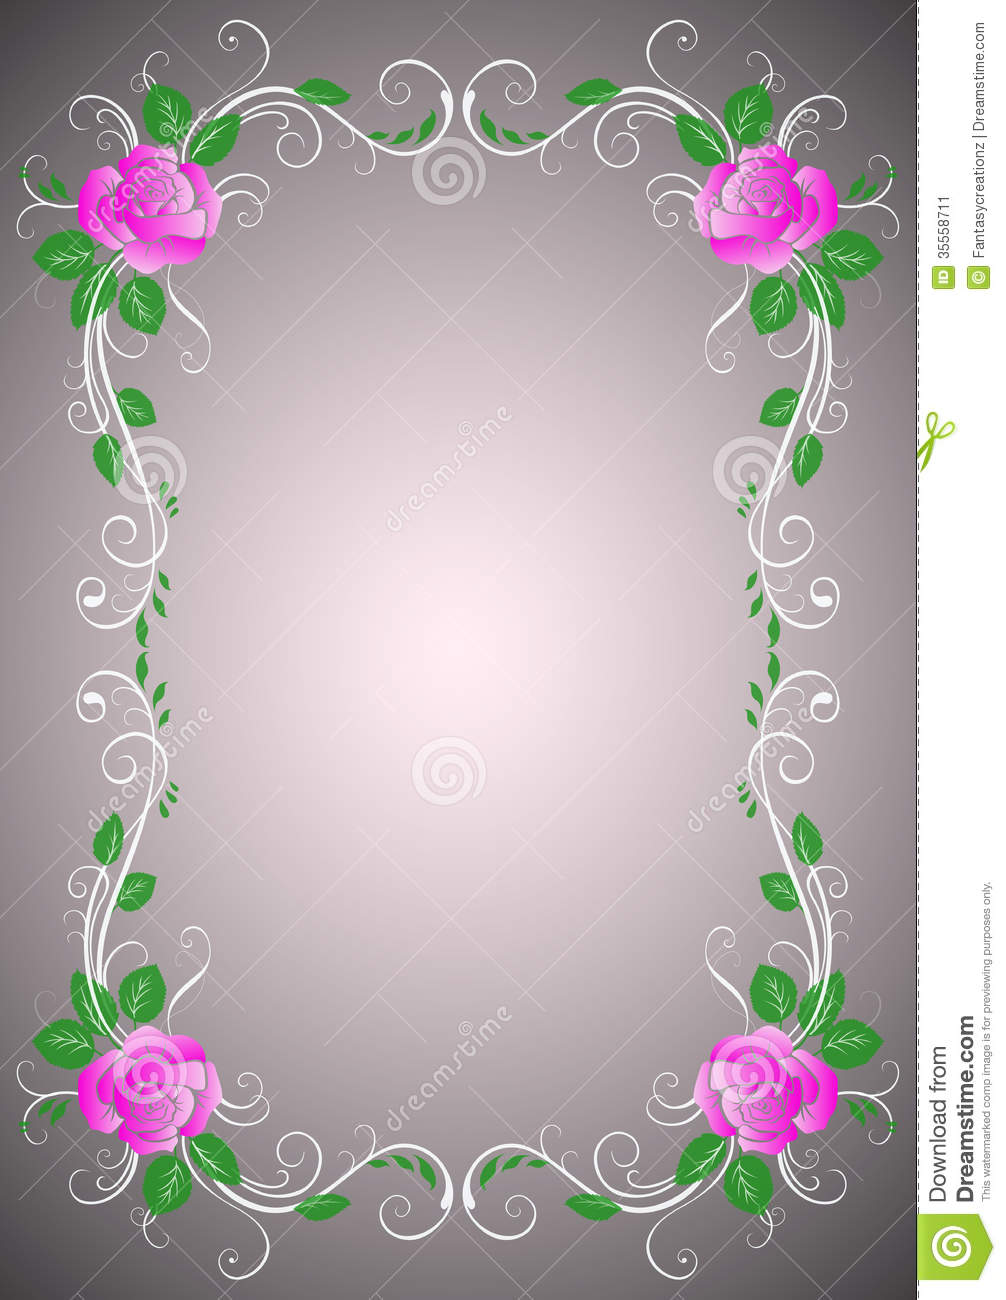 Floral border design with roses.